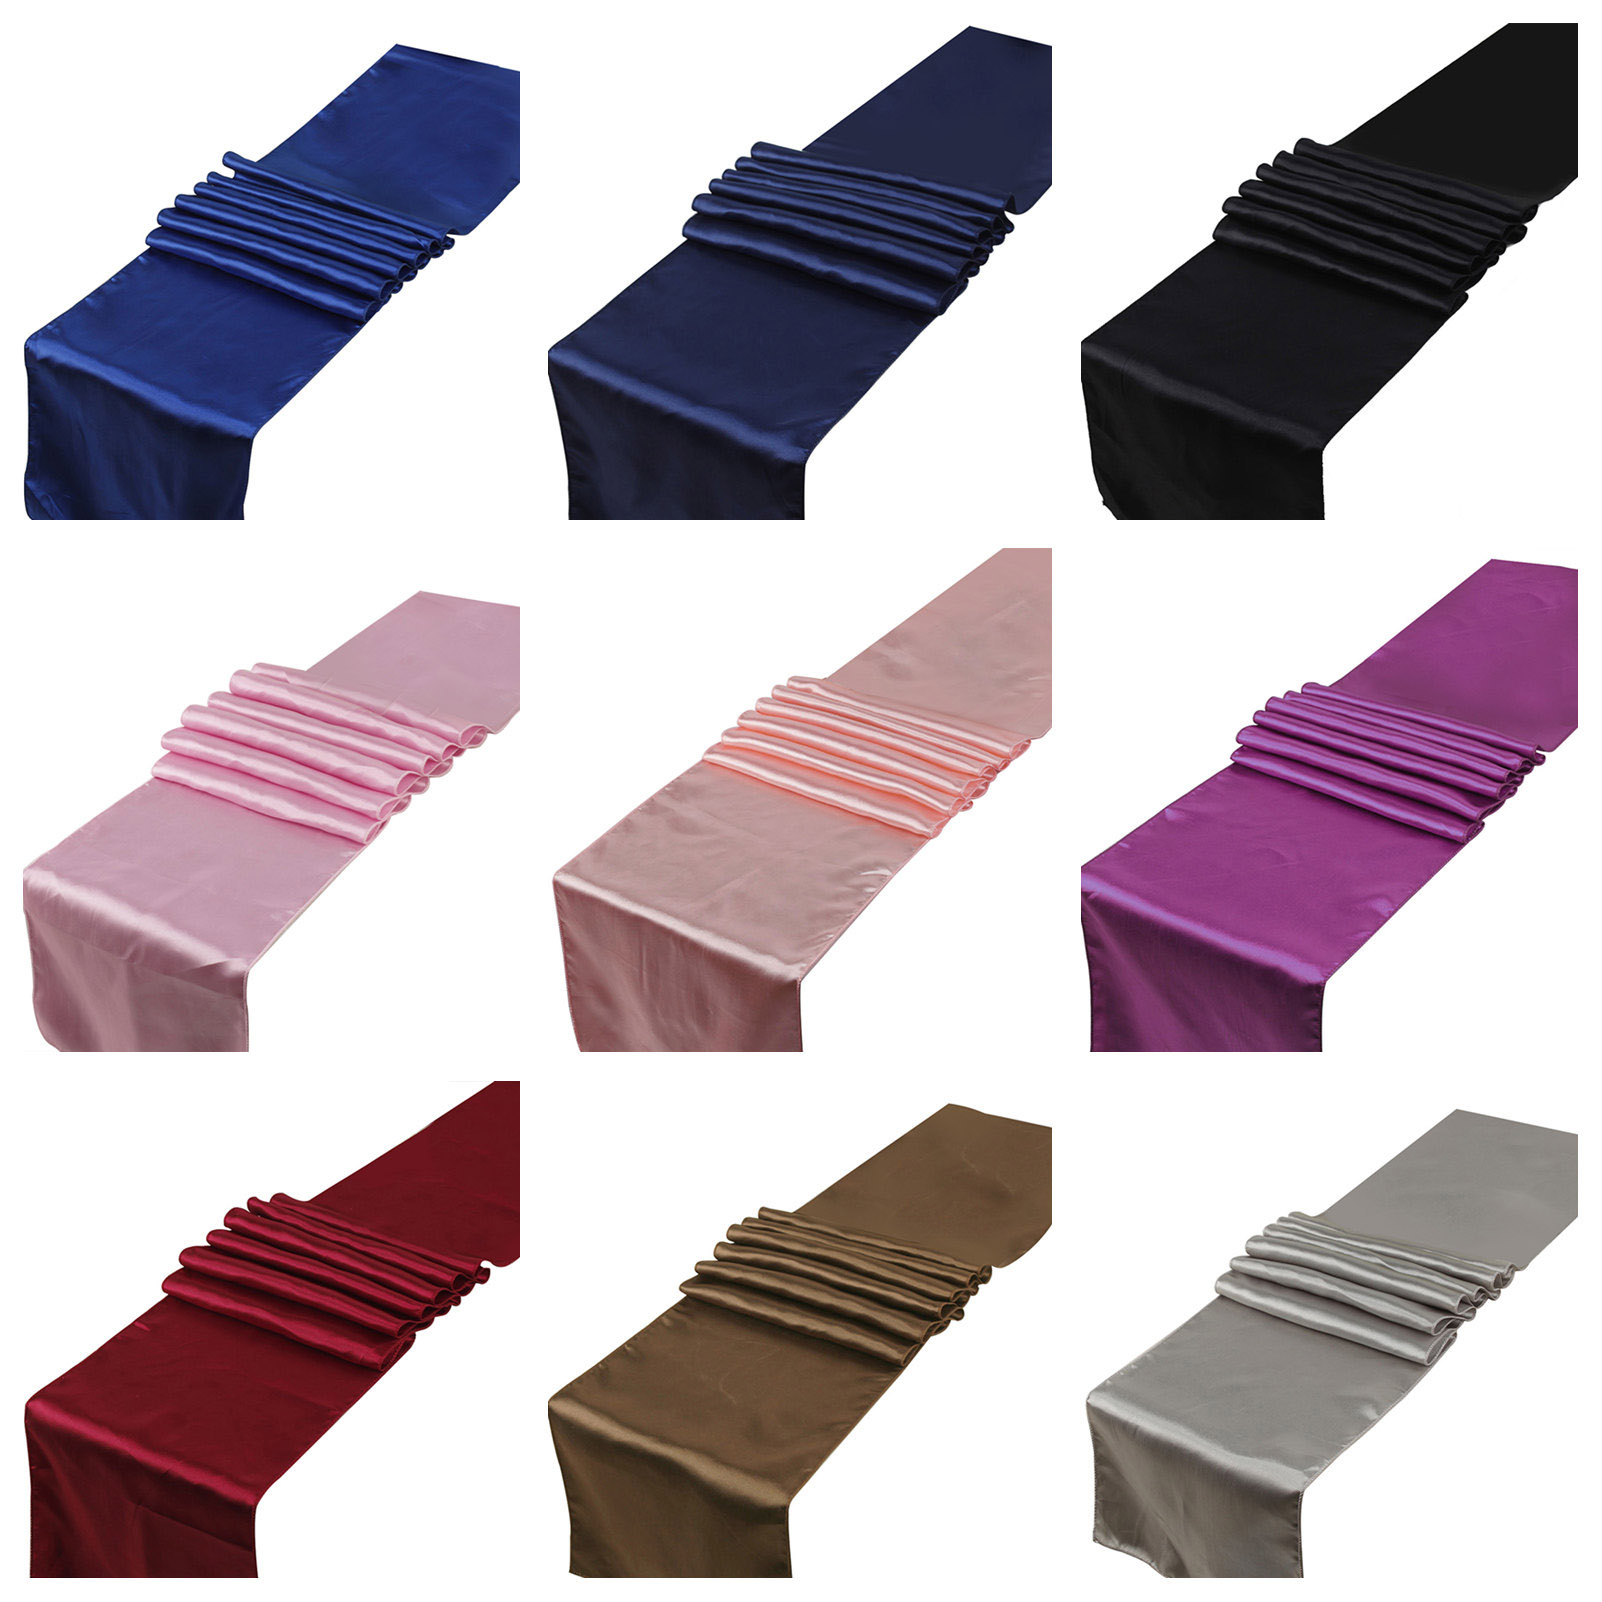 25PCS Satin Table Runners Wedding Party Event Home Decor Supply Satin Fabric Chair Sash Bow Table